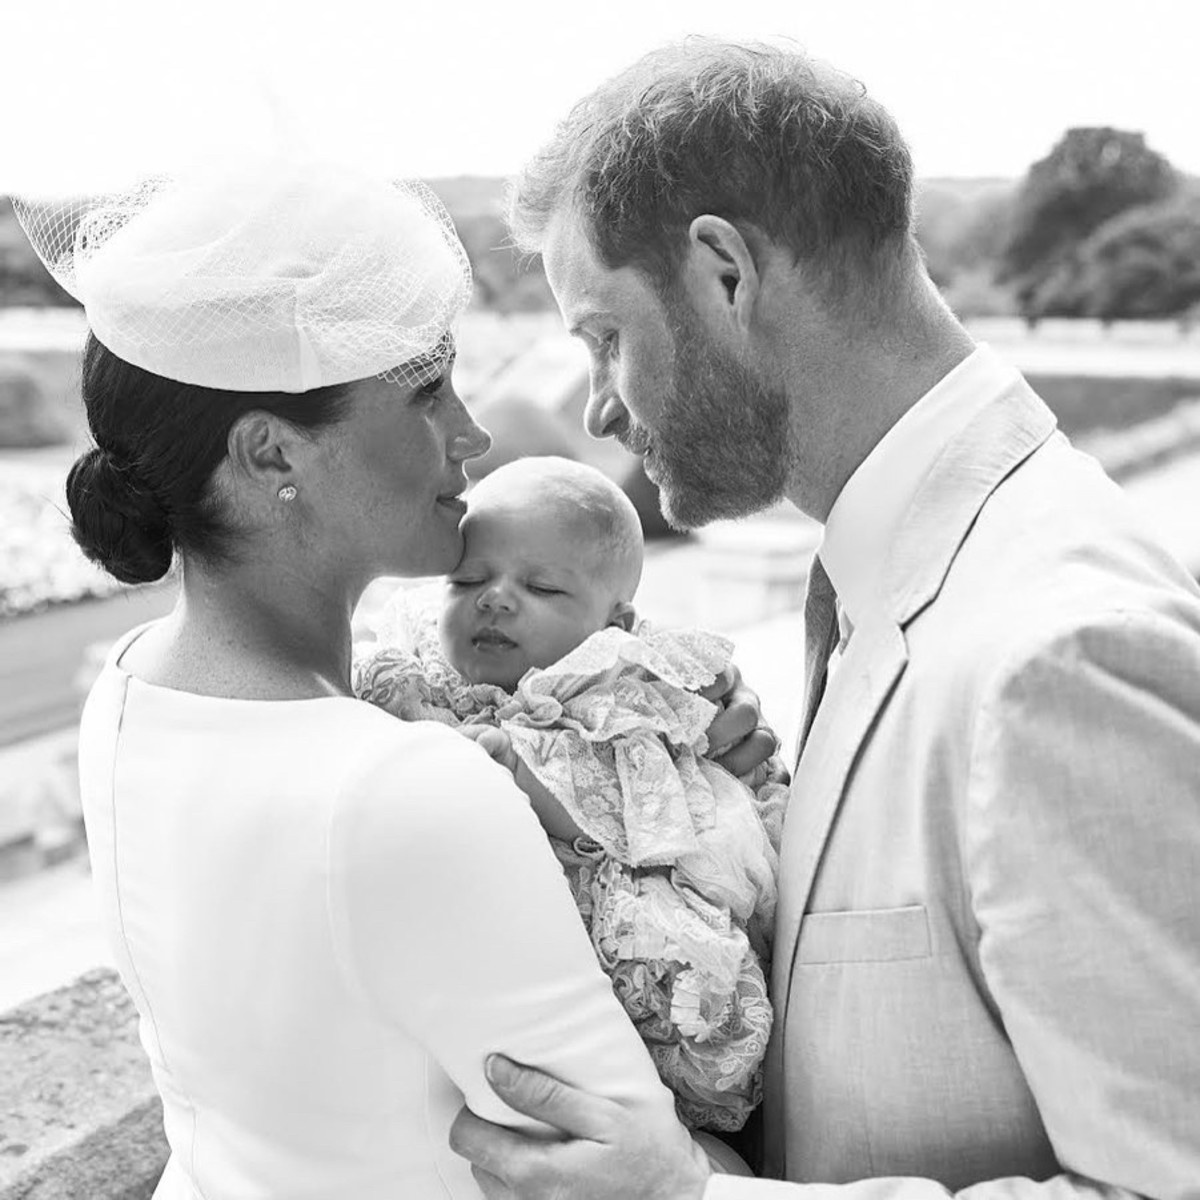 Prince Harry, Duke of Sussex, and Meghan, Duchess of Sussex holding their baby son, Archie Harrison Mountbatten-Windsor at Windsor Castle.Photo: Chris Allerton/Sussex Royal/AFP